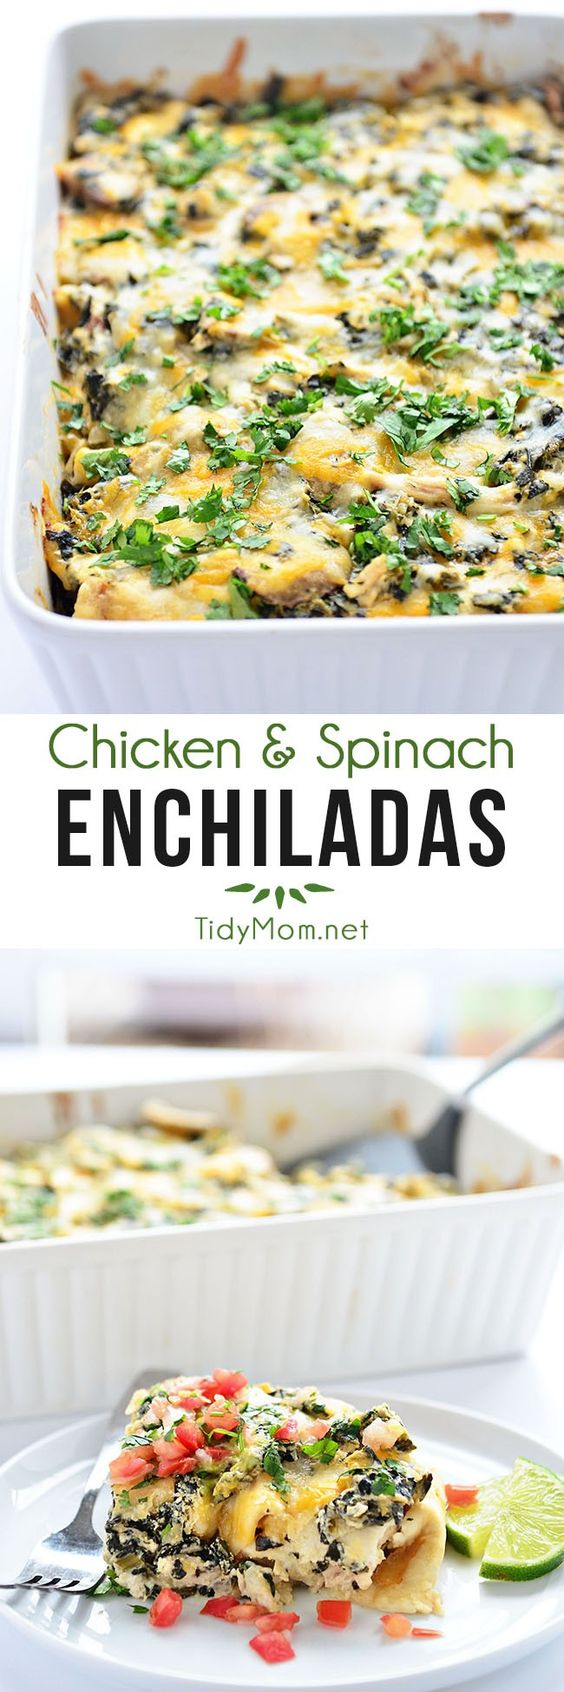 Chicken and Spinach Enchiladas are a family favorite!  recipe at TidyMom.net